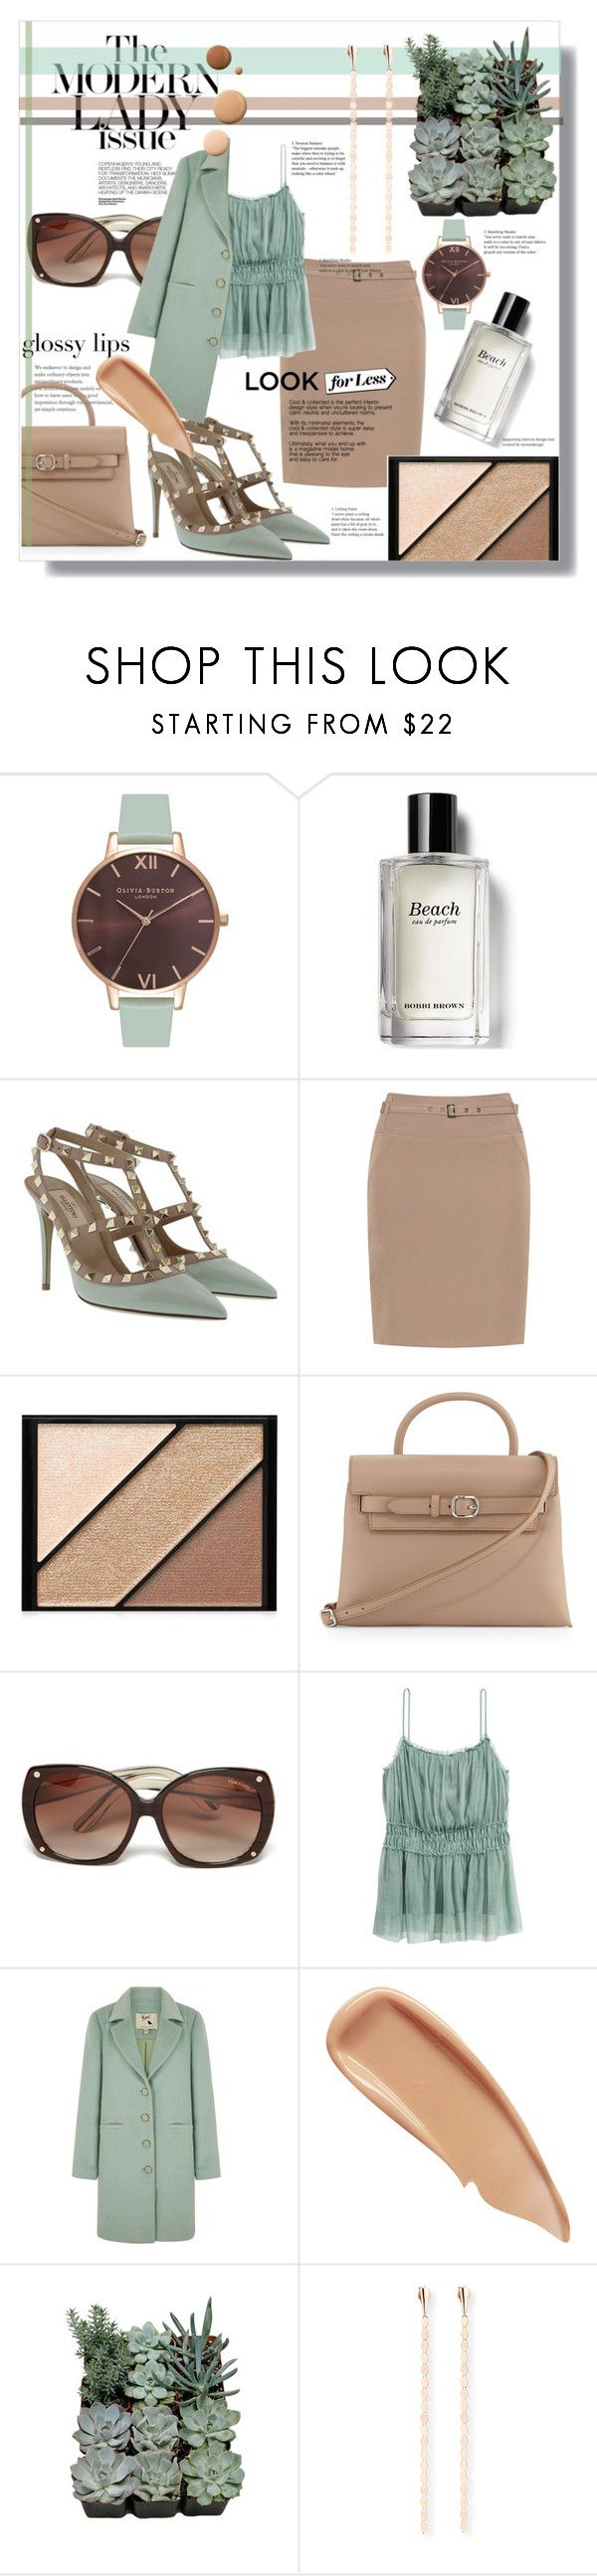 """Untitled #1331"" by sugarmoonmama ❤ liked on Polyvore featuring Olivia Burton, Bobbi Brown Cosmetics, Valentino, Manon Baptiste, Elizabeth Arden, Alexander Wang, Tom Ford, Hedi Slimane, Yumi and Sisley"